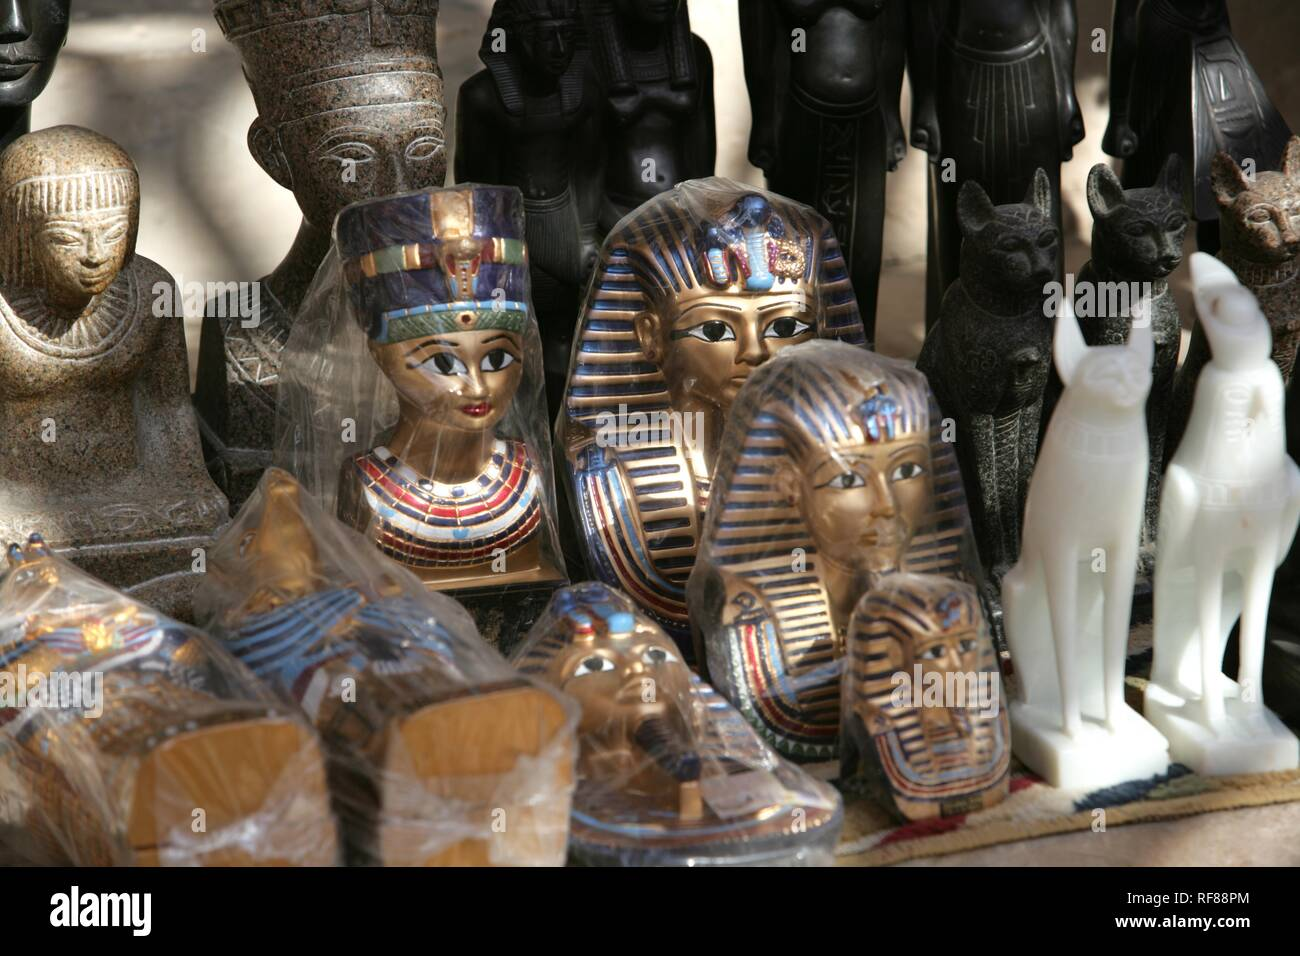 Souvenirs, Valley of the Kings, Luxor, Egypt, Africa Stock Photo